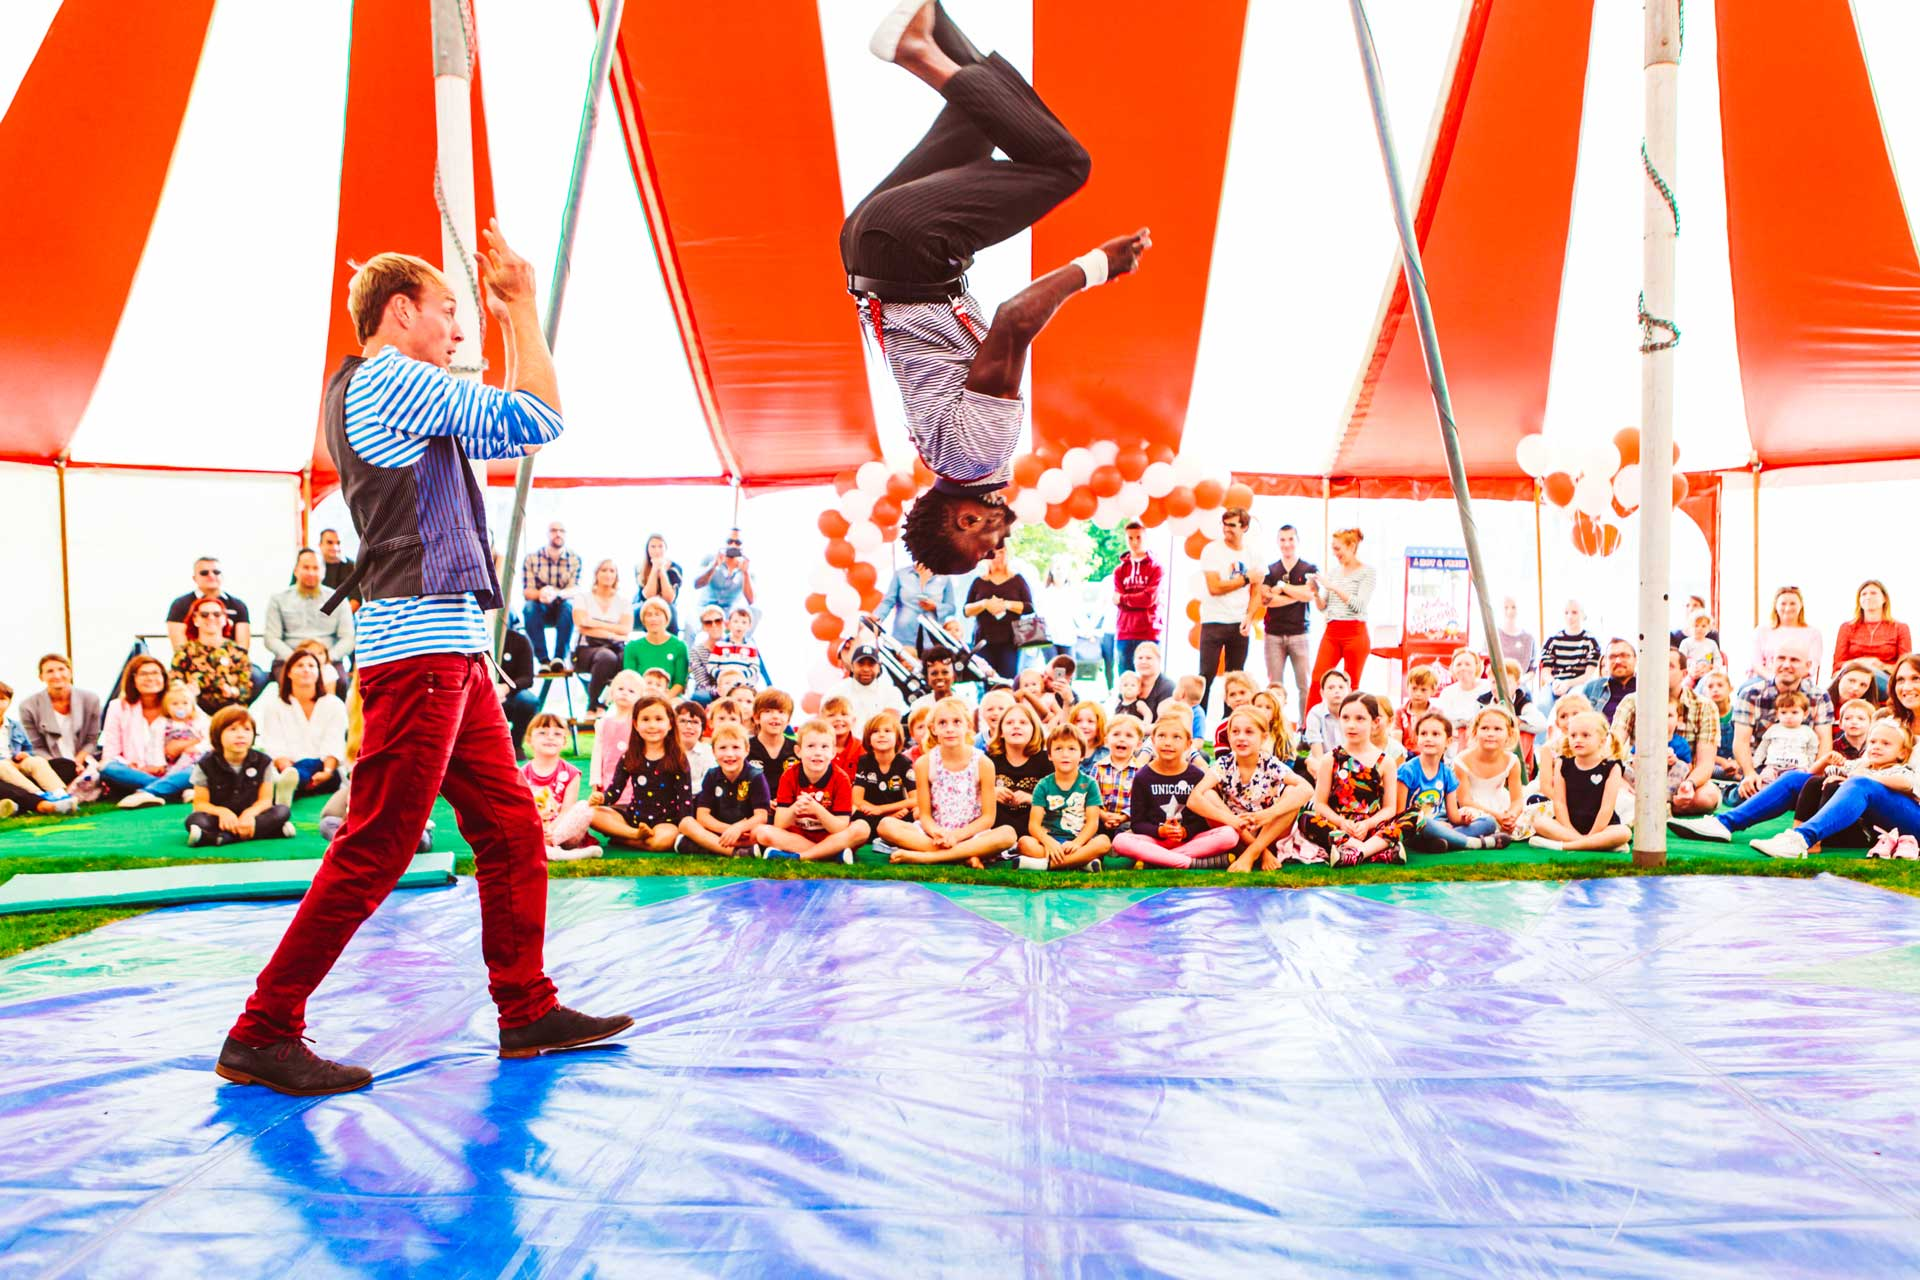 acrobats in circus show that you can hire